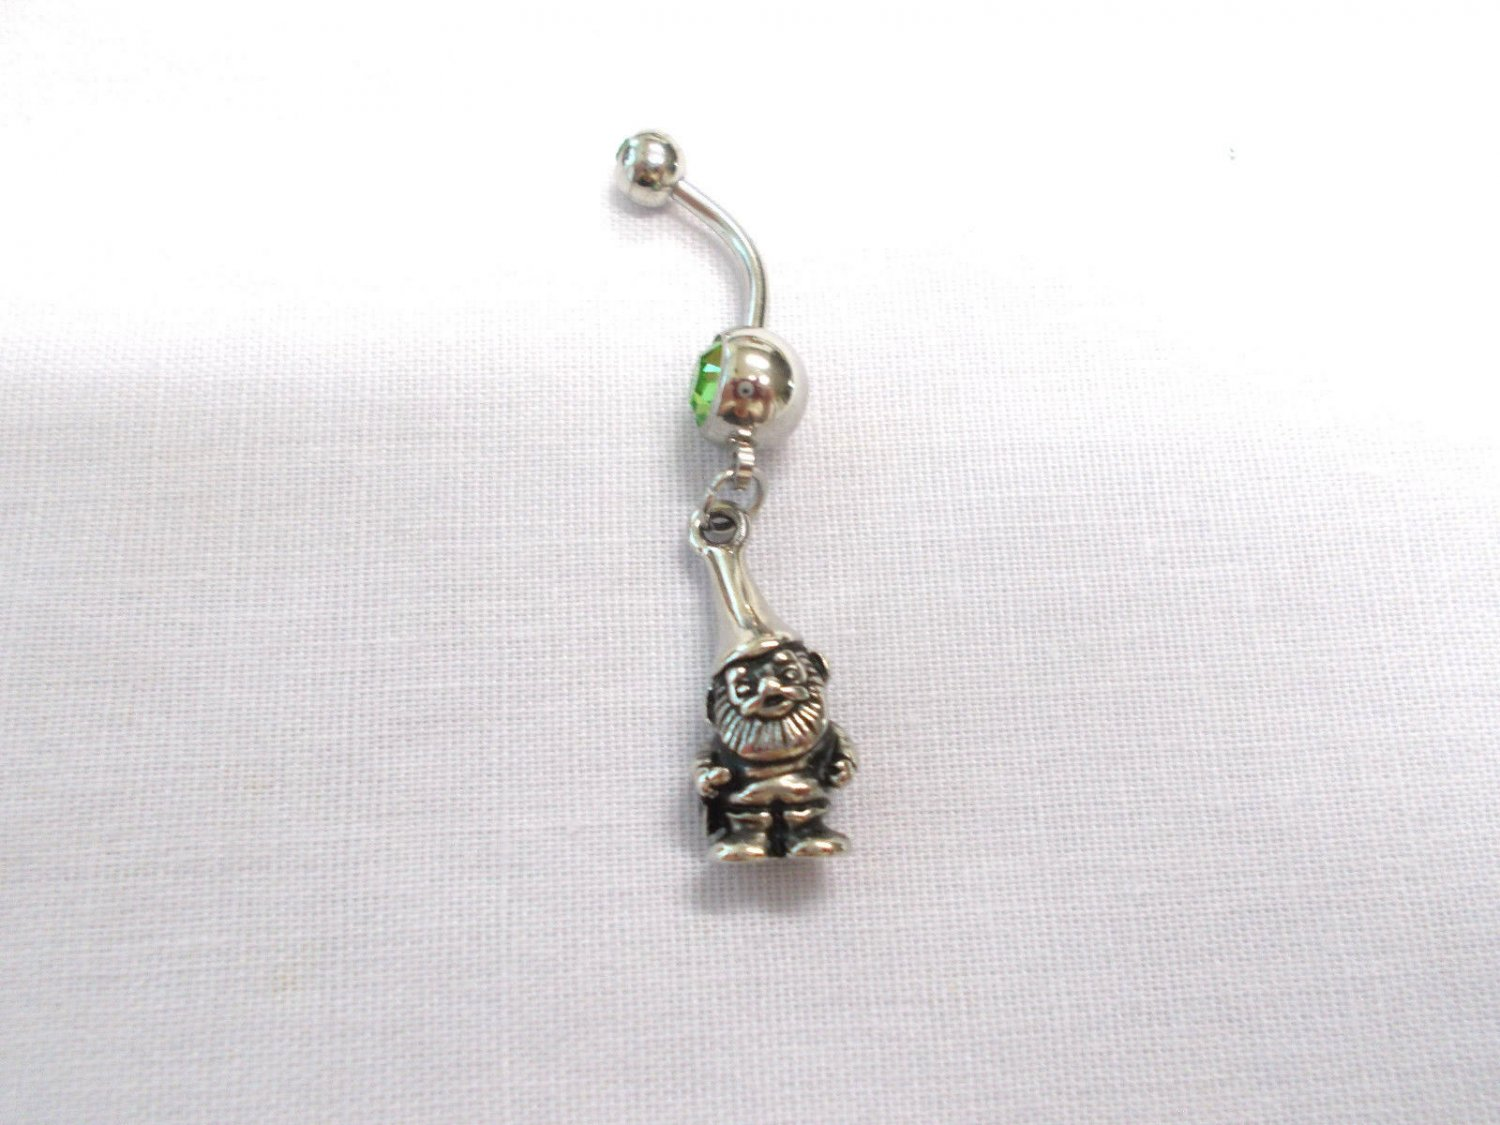 NEW 3D KNOME DUDE - HAT - BEARD -  GARDEN - WOODS CHARM 14g GREEN CZ BELLY RING